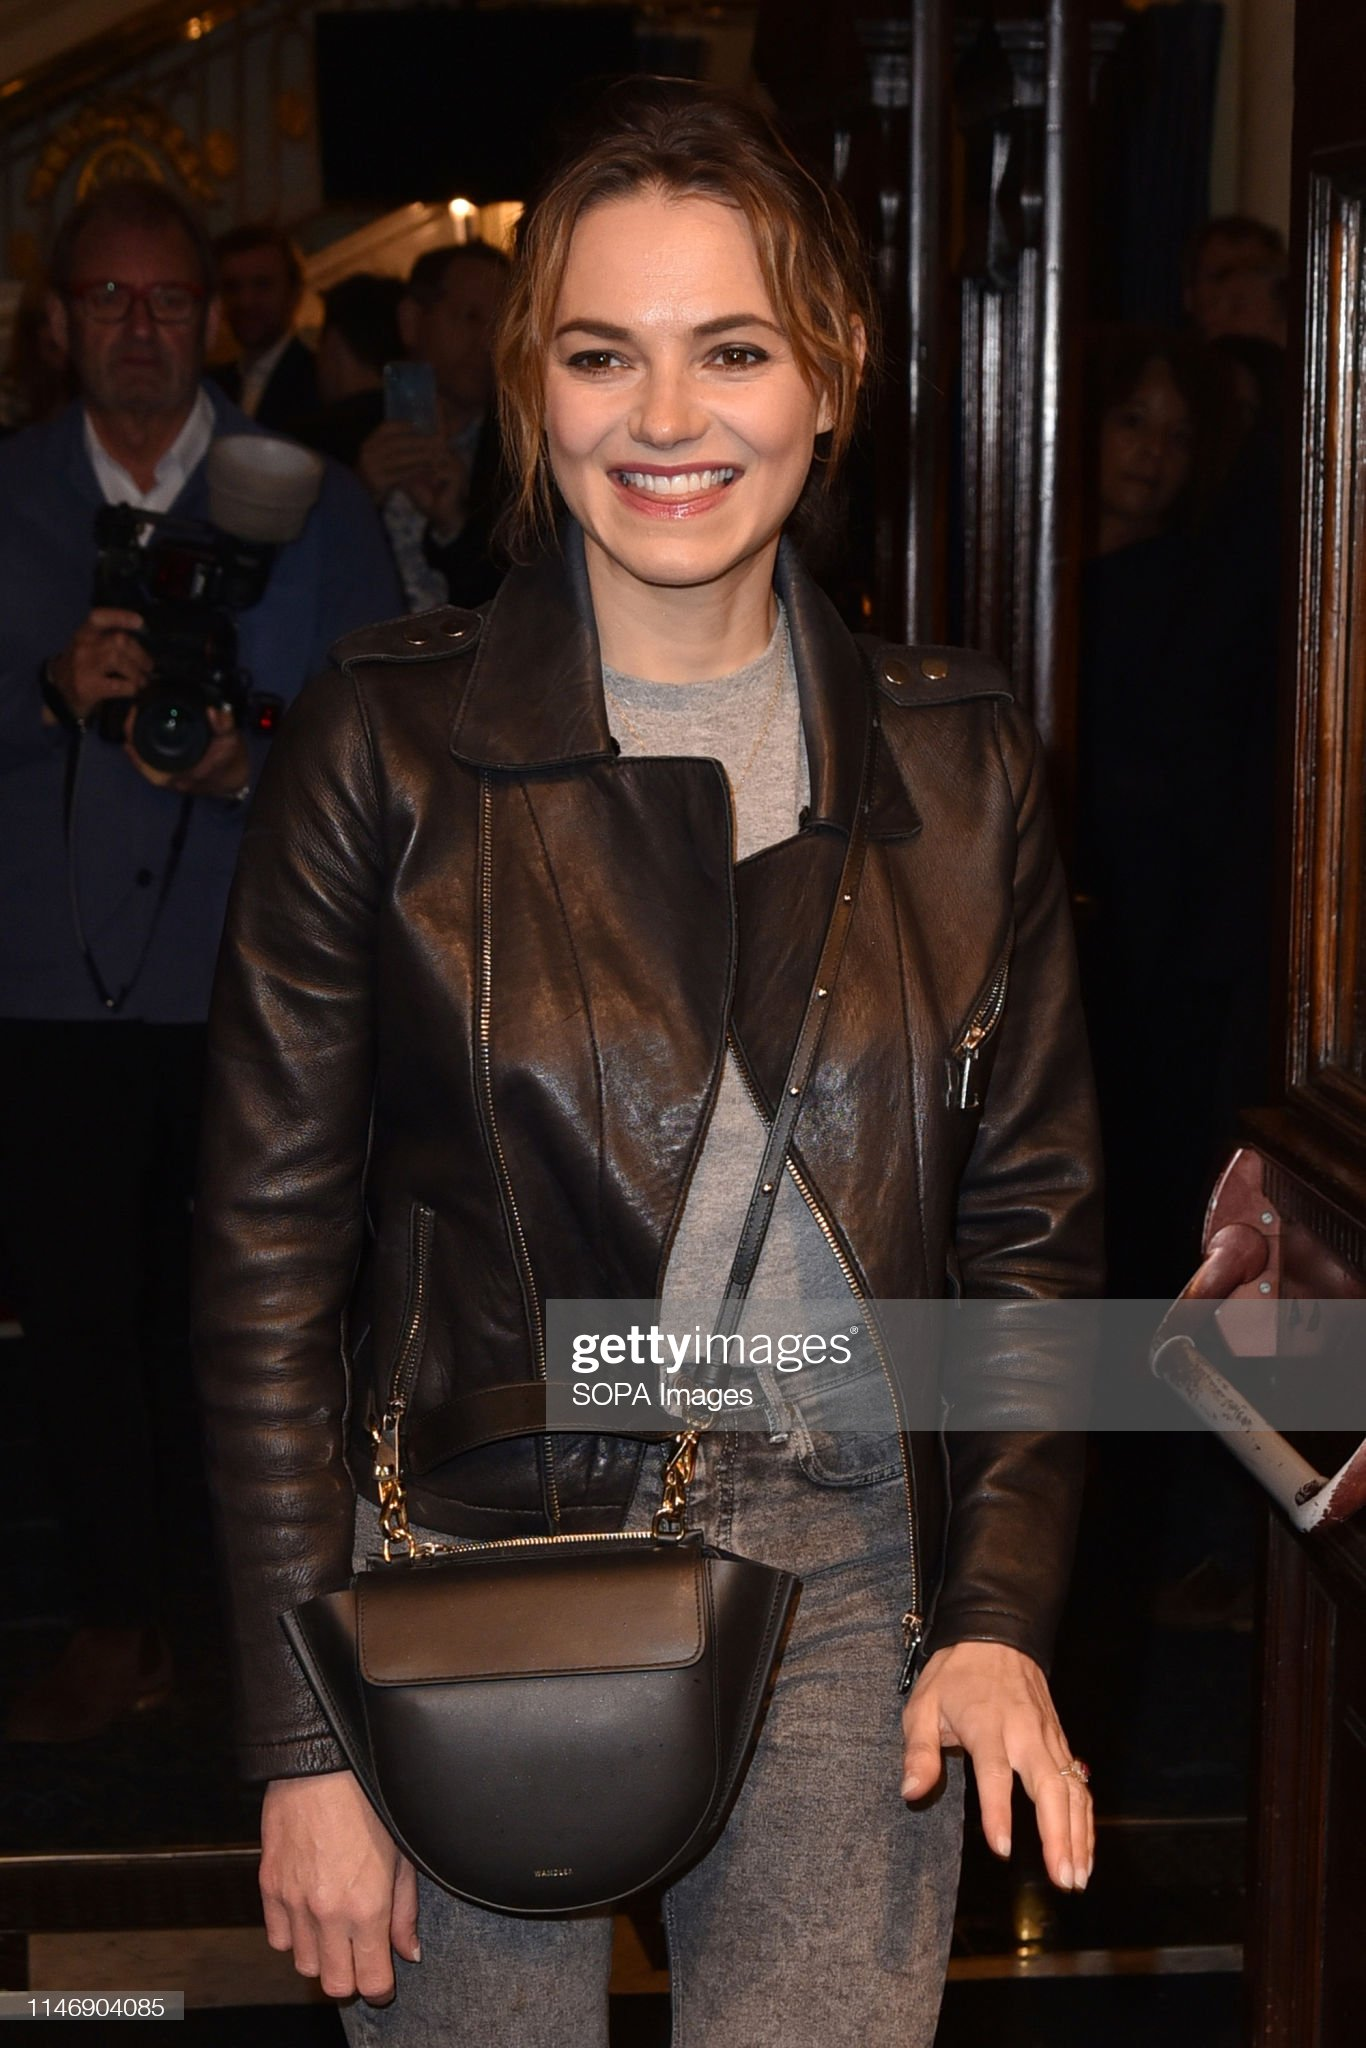 kara-tointon-seen-during-the-starry-messenger-press-night-at-wyndhams-picture-id1146904085?s=2048x2048